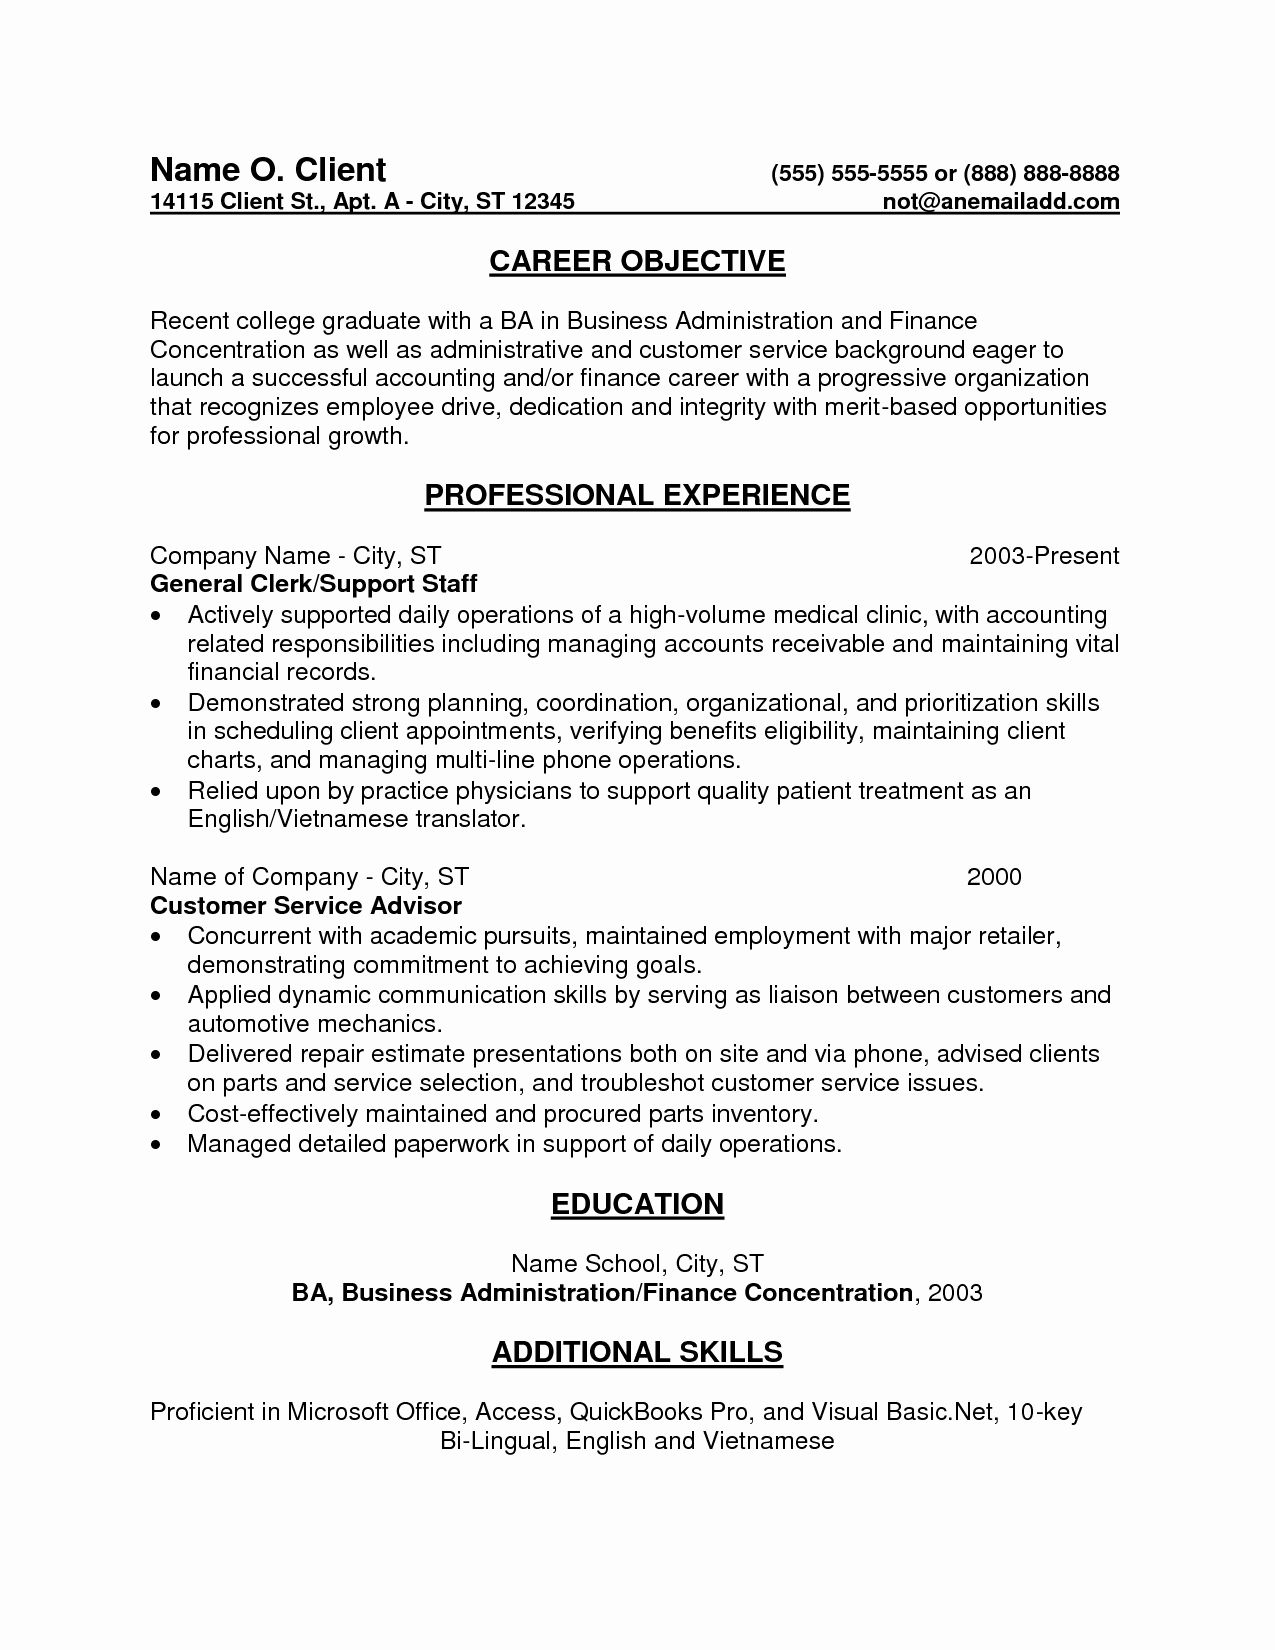 25 Entry Level Accounting Cover Letter in 2020 Resume